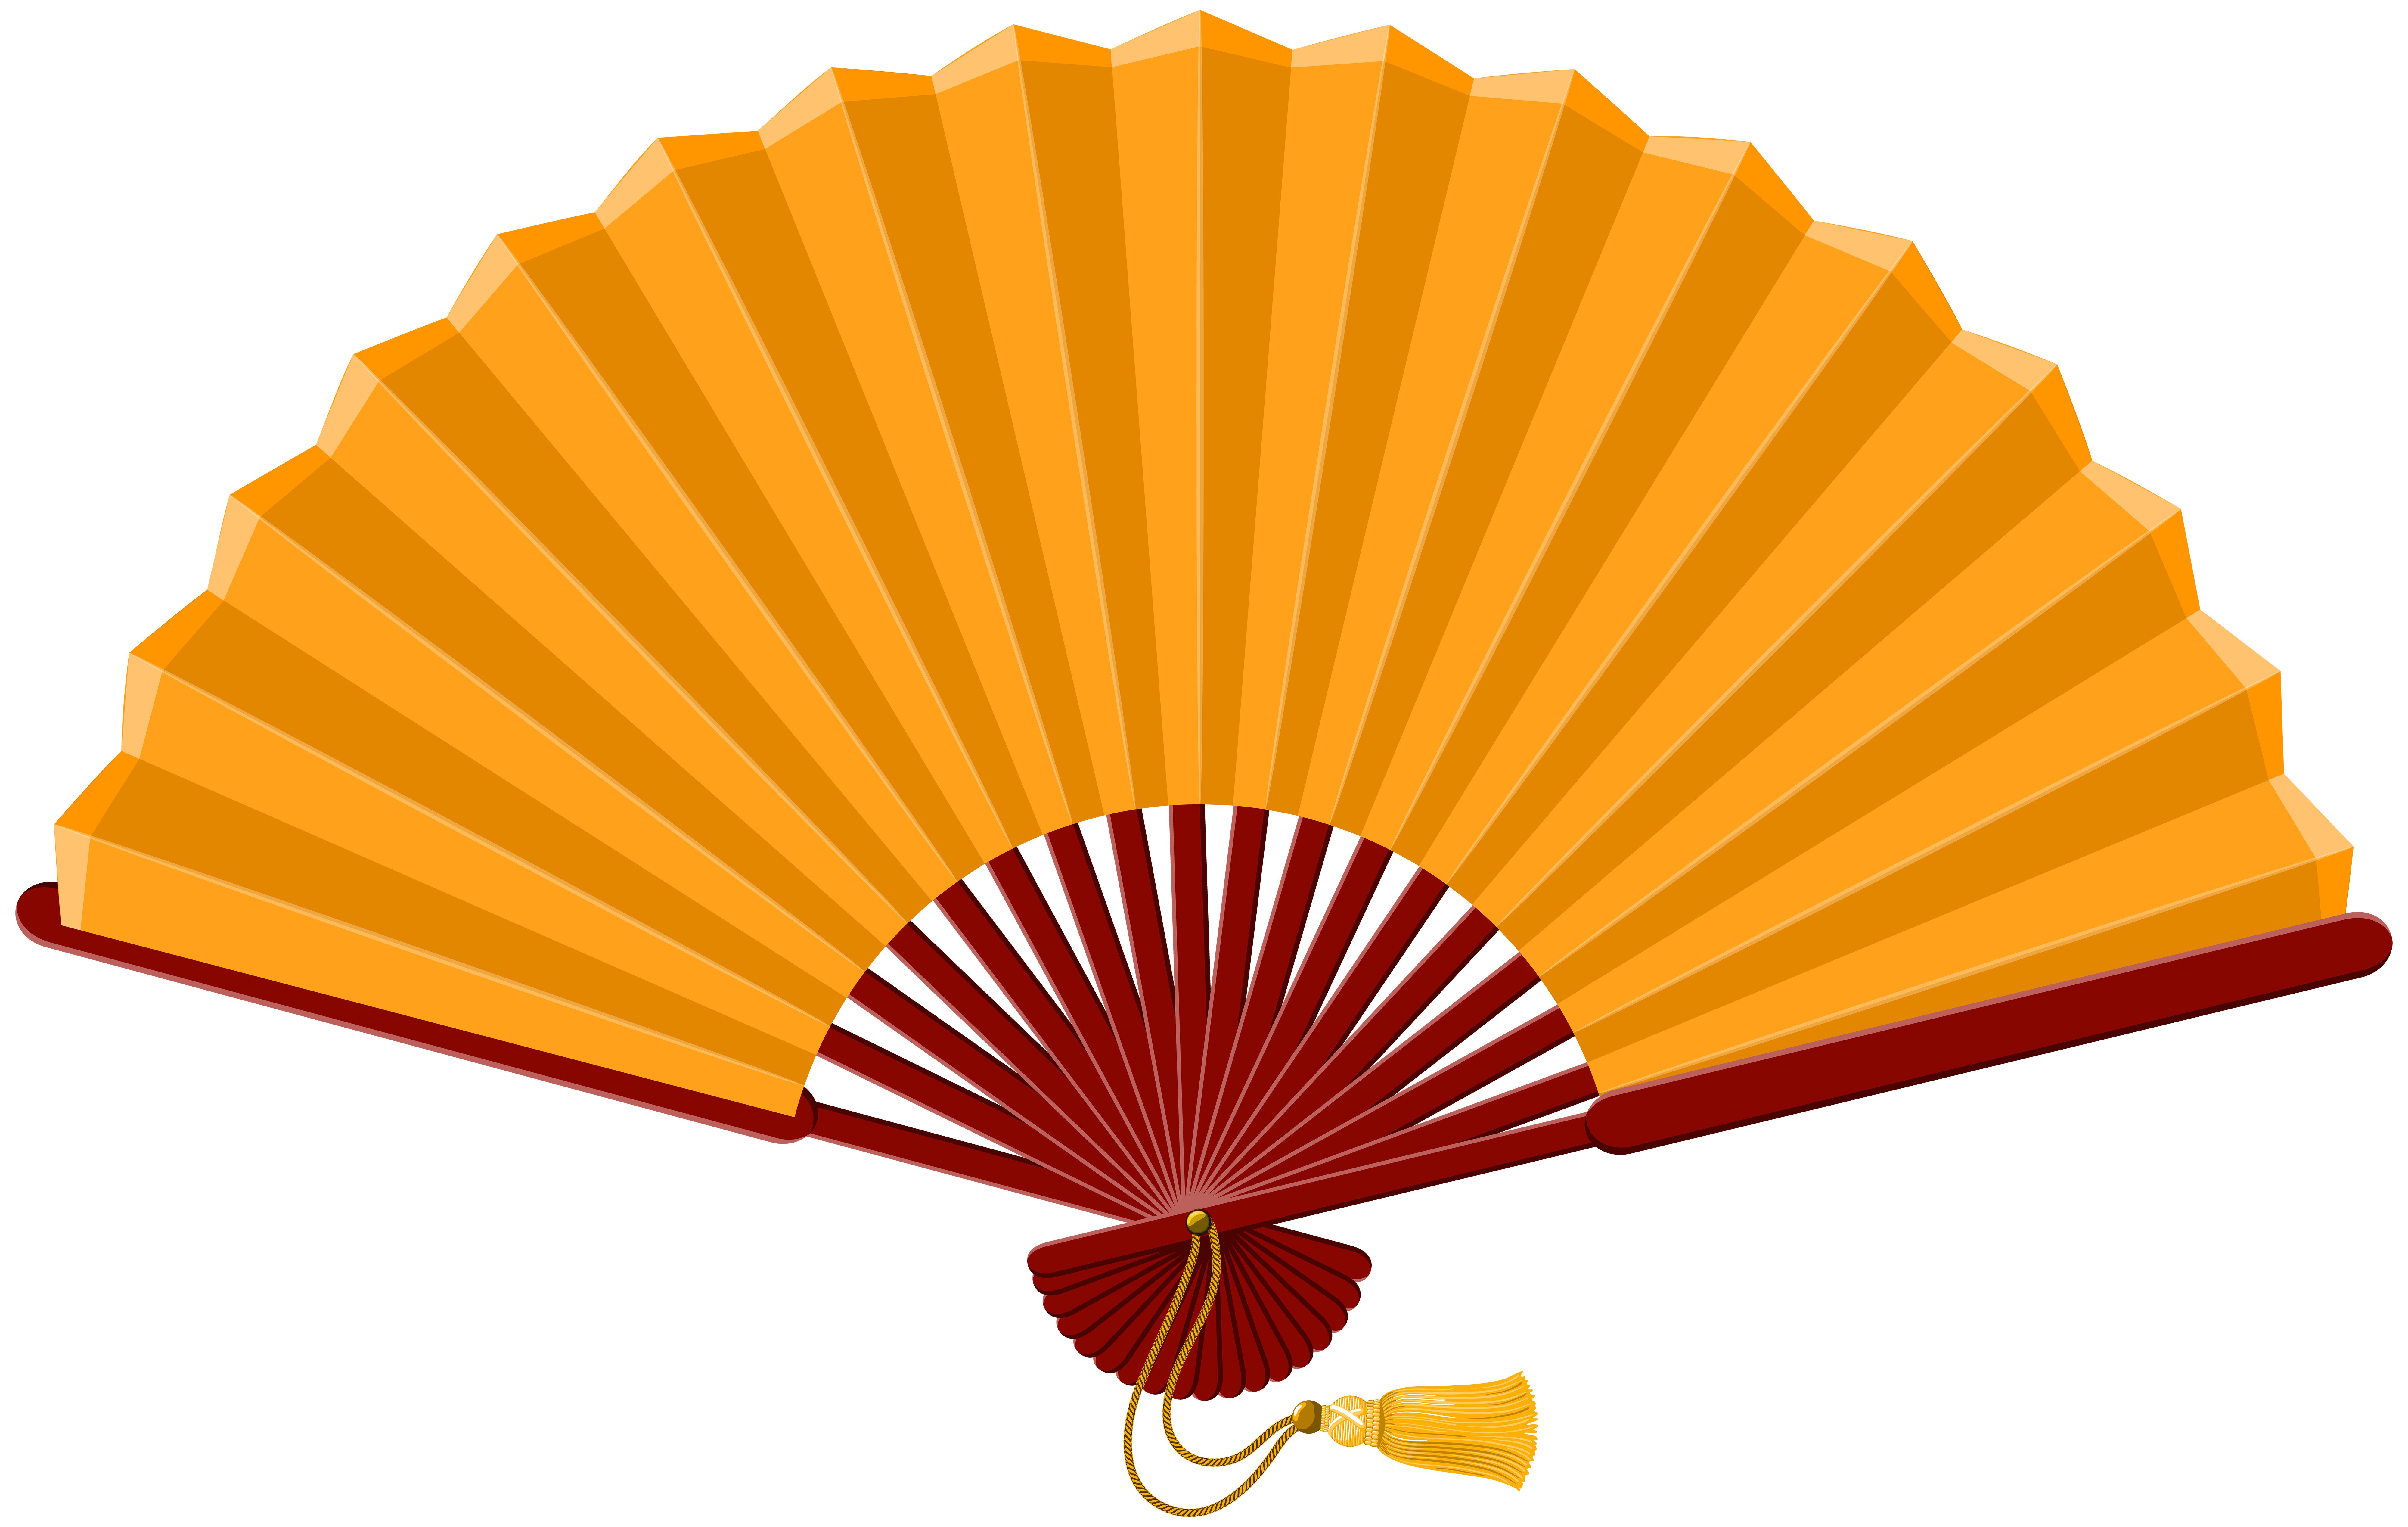 Fan clipart images svg transparent library Chinese Fan PNG Clip Art - Best WEB Clipart svg transparent library